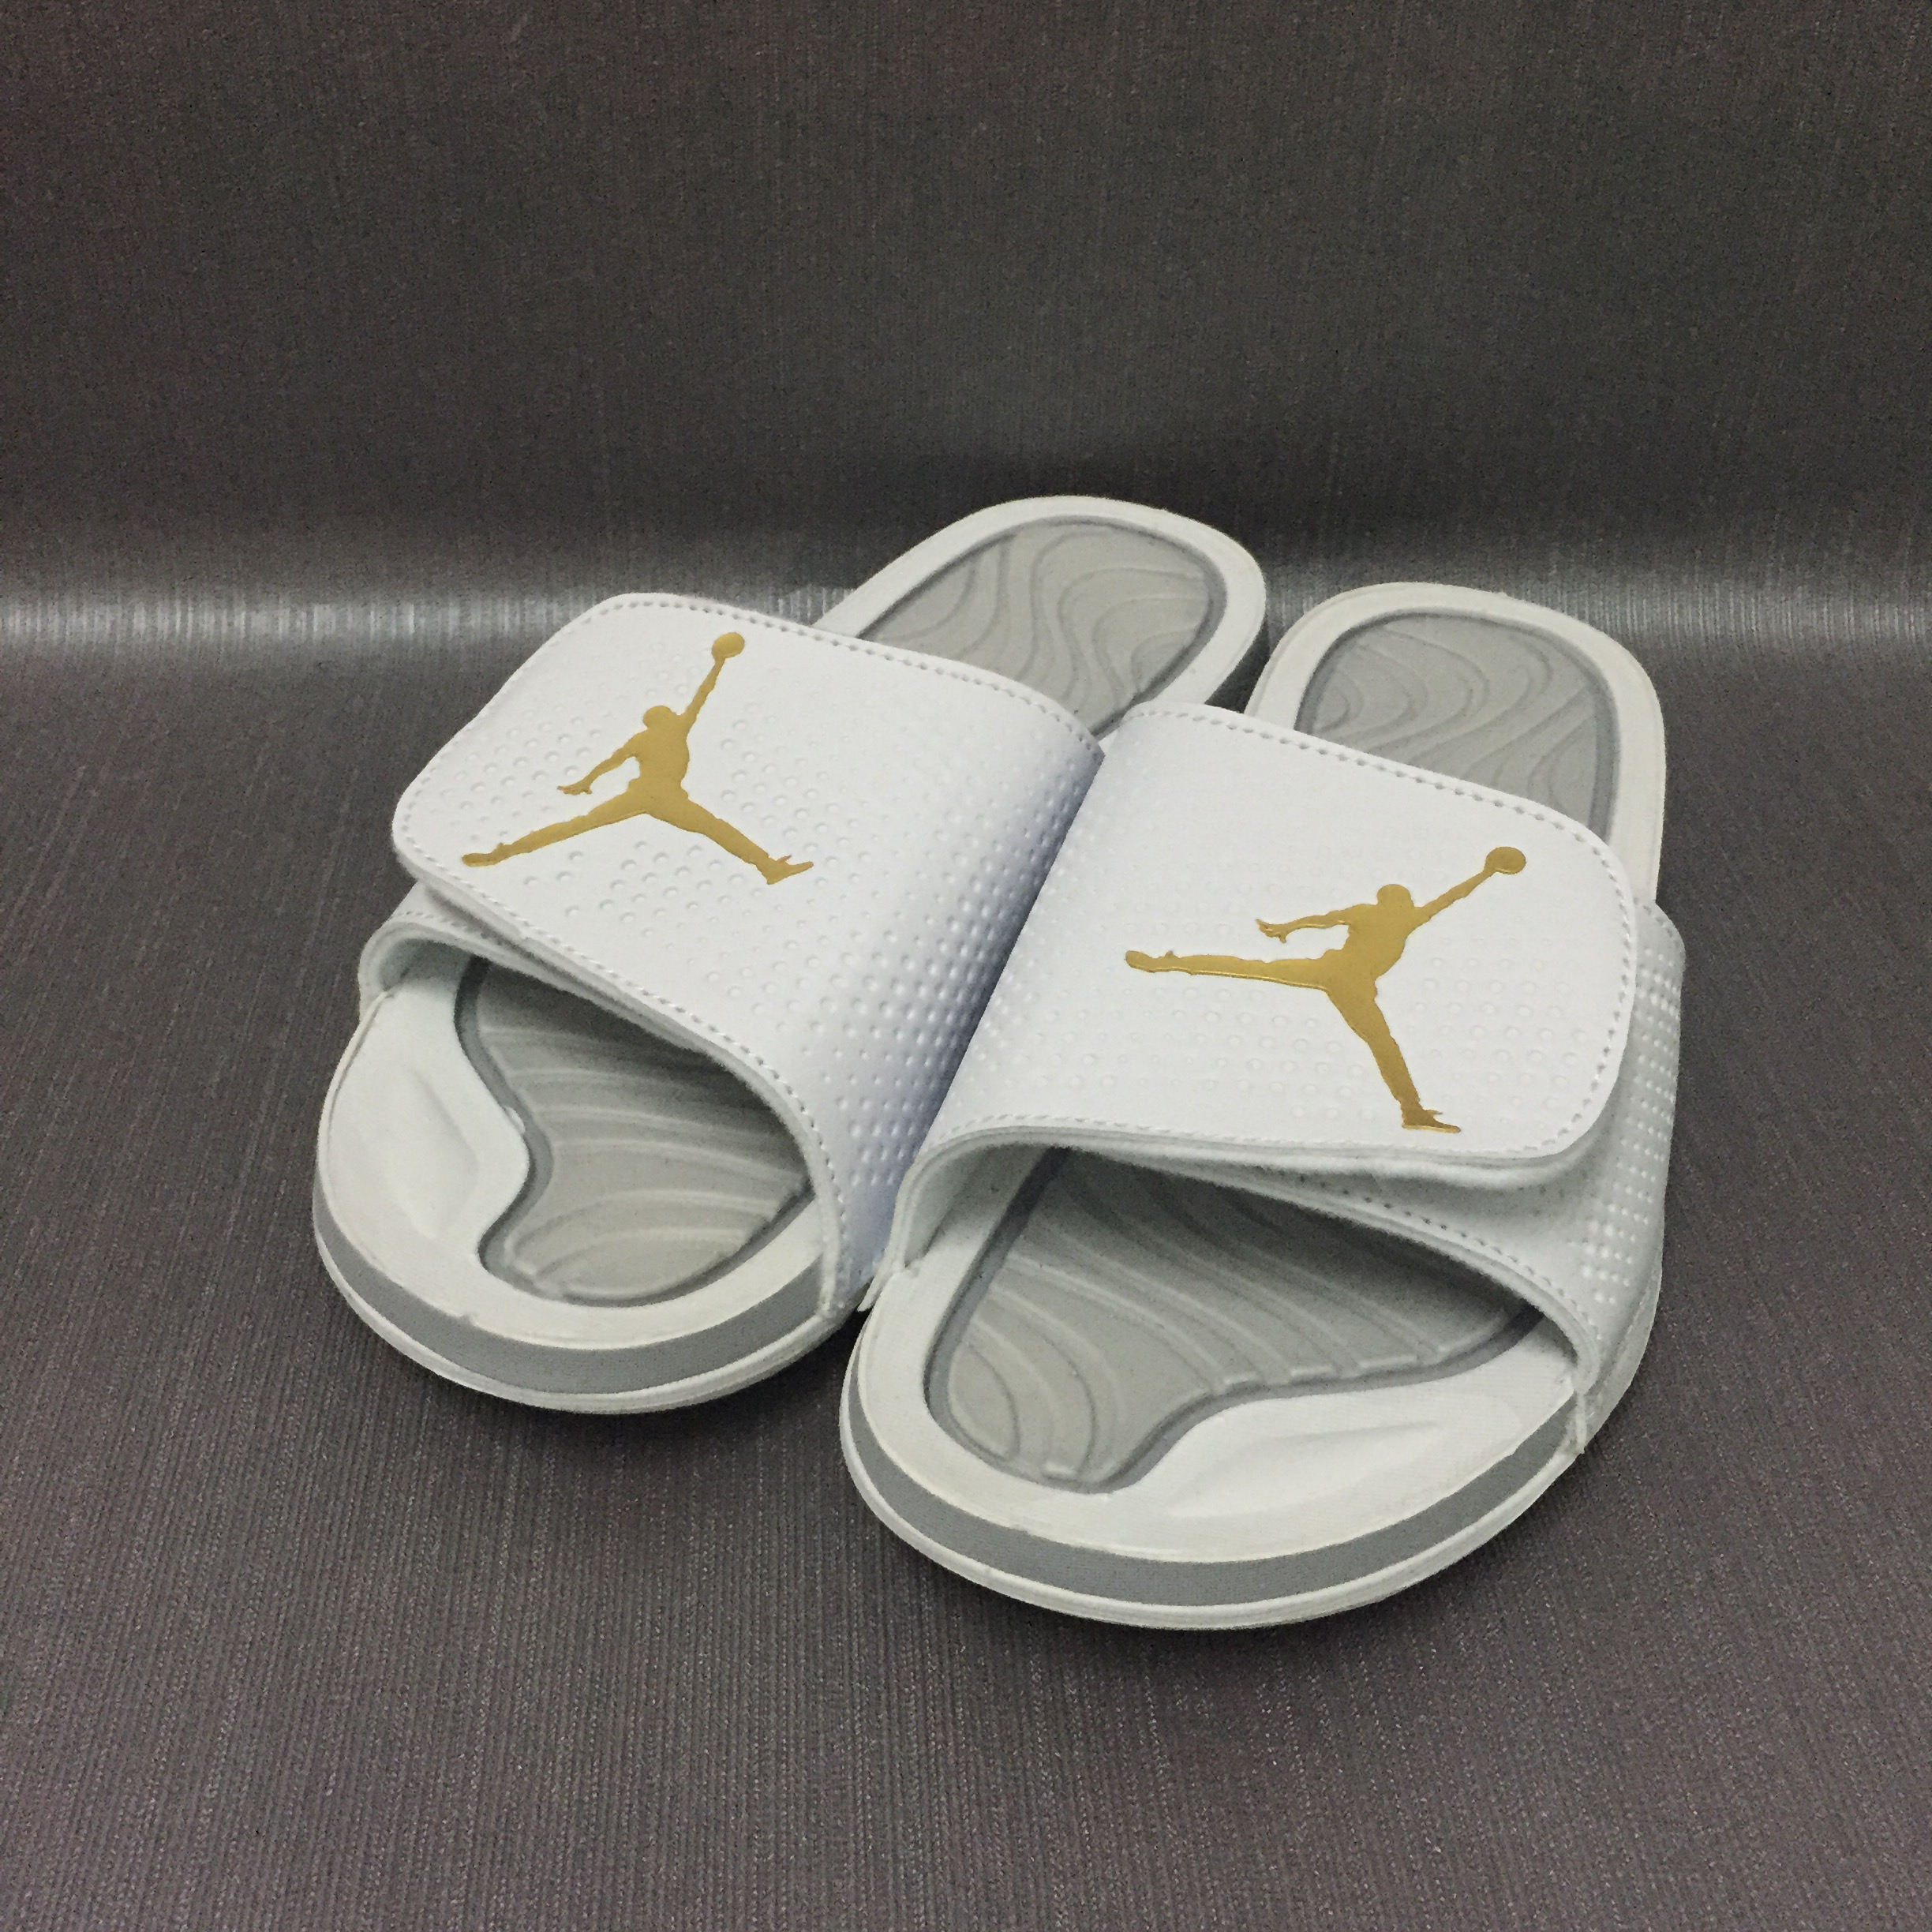 Jordans 4 Massage Hydro Gray White Sandle